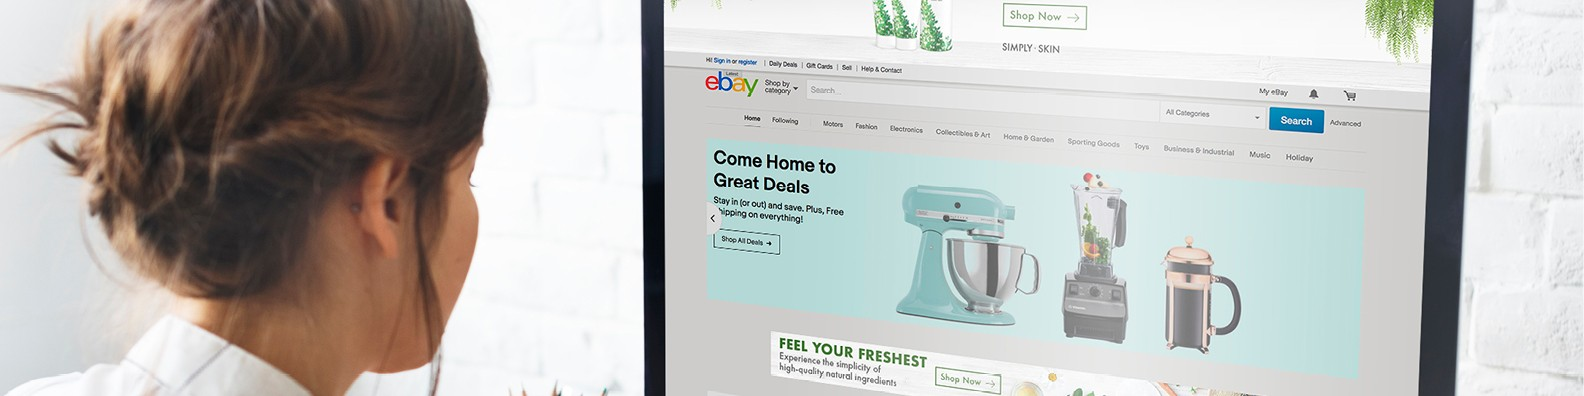 Ebay Advertising Mission Statement Employees And Hiring Linkedin